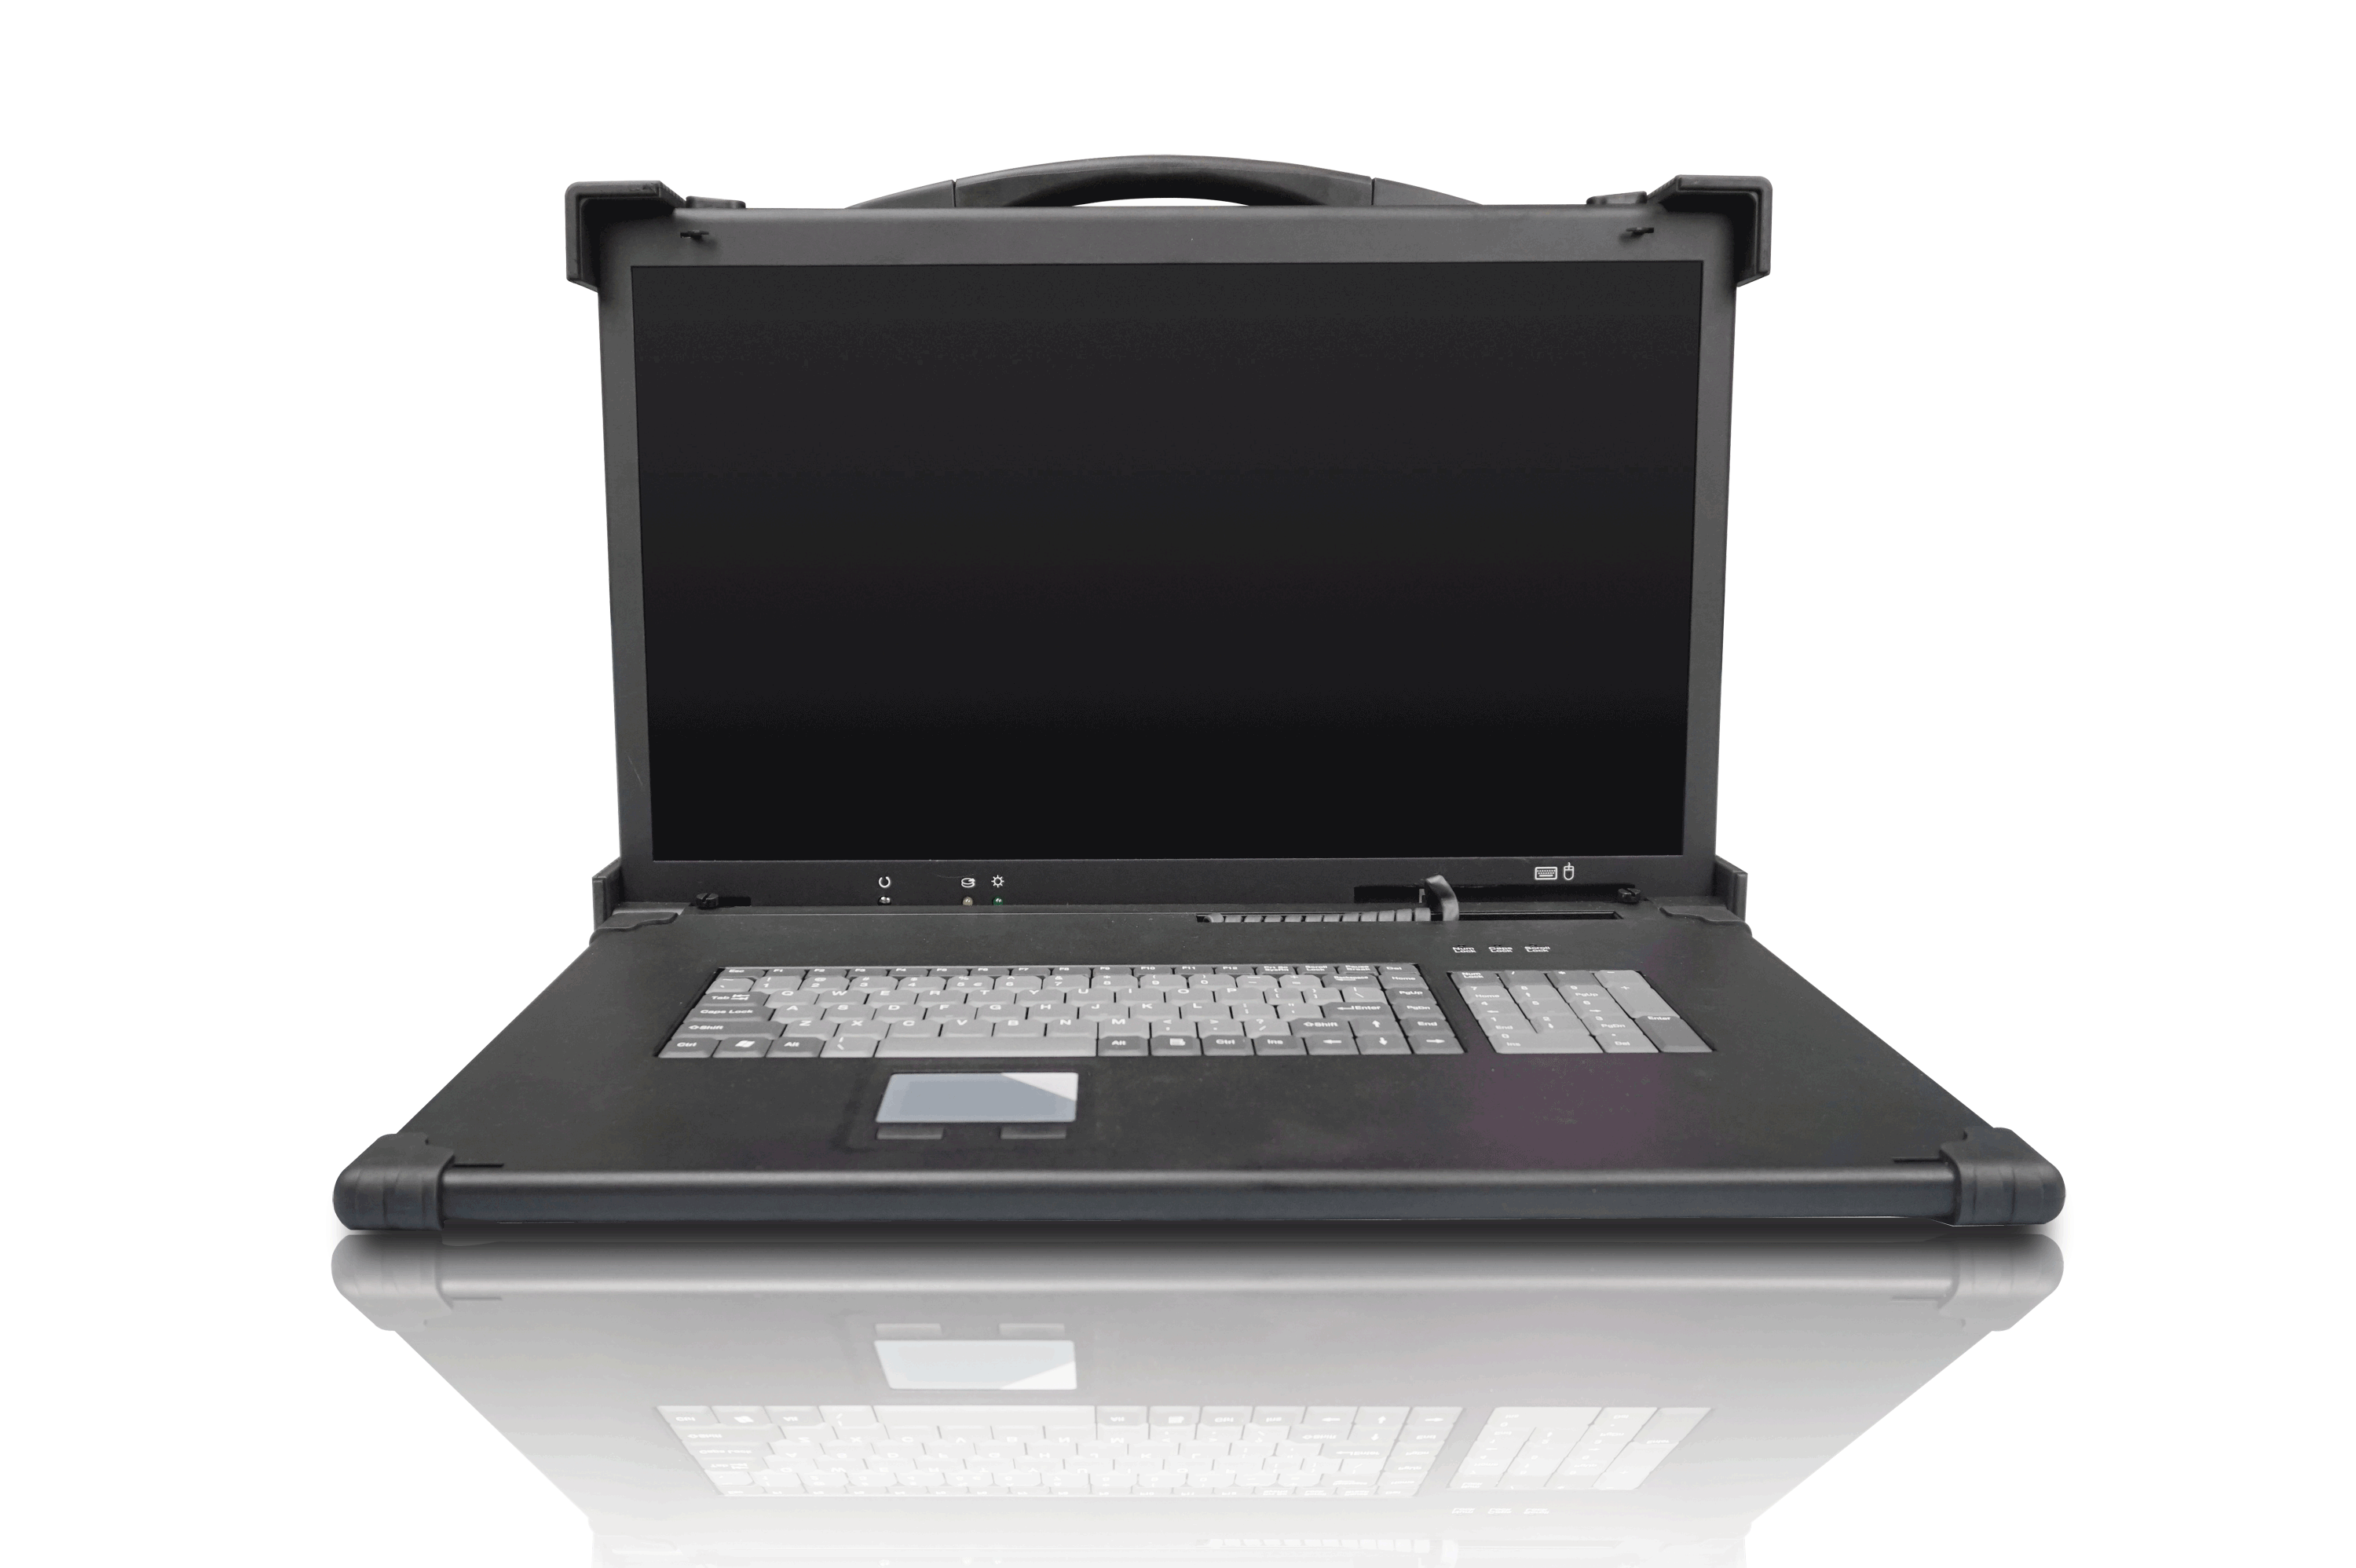 KG 7050-G2 portable GPU workstation